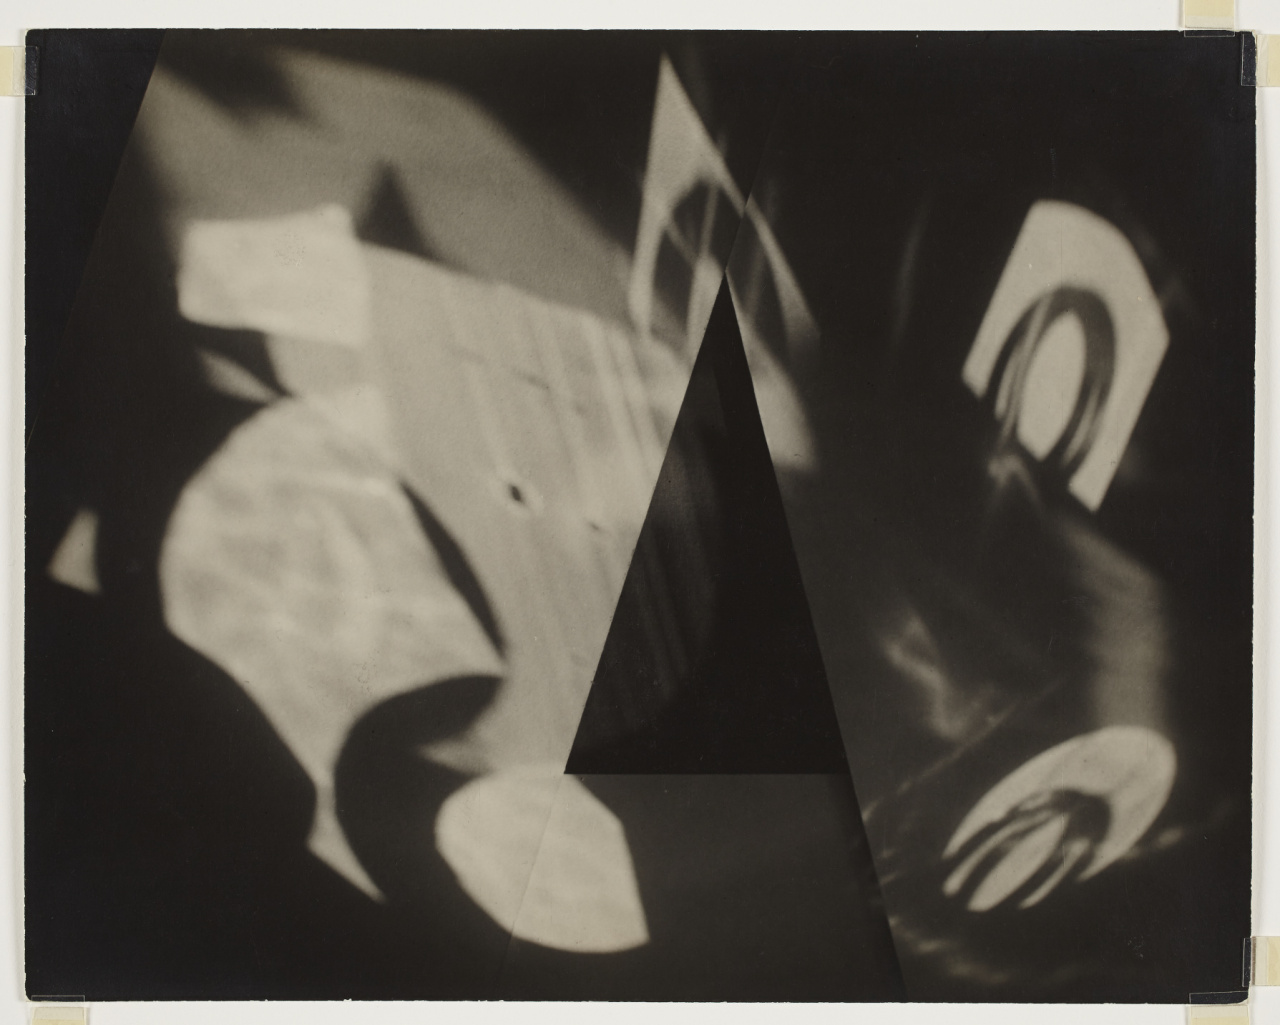 Jaromir Funke, Abstraction, 1925-1930. Gelatin silver print, Sheet: 23.1 × 29.2 cm. Malcolmson Collection. Gift of Harry and Ann Malcolmson in partnership with a private donor, 2014. © Art Gallery of Ontario 2014/550. AGO.114541